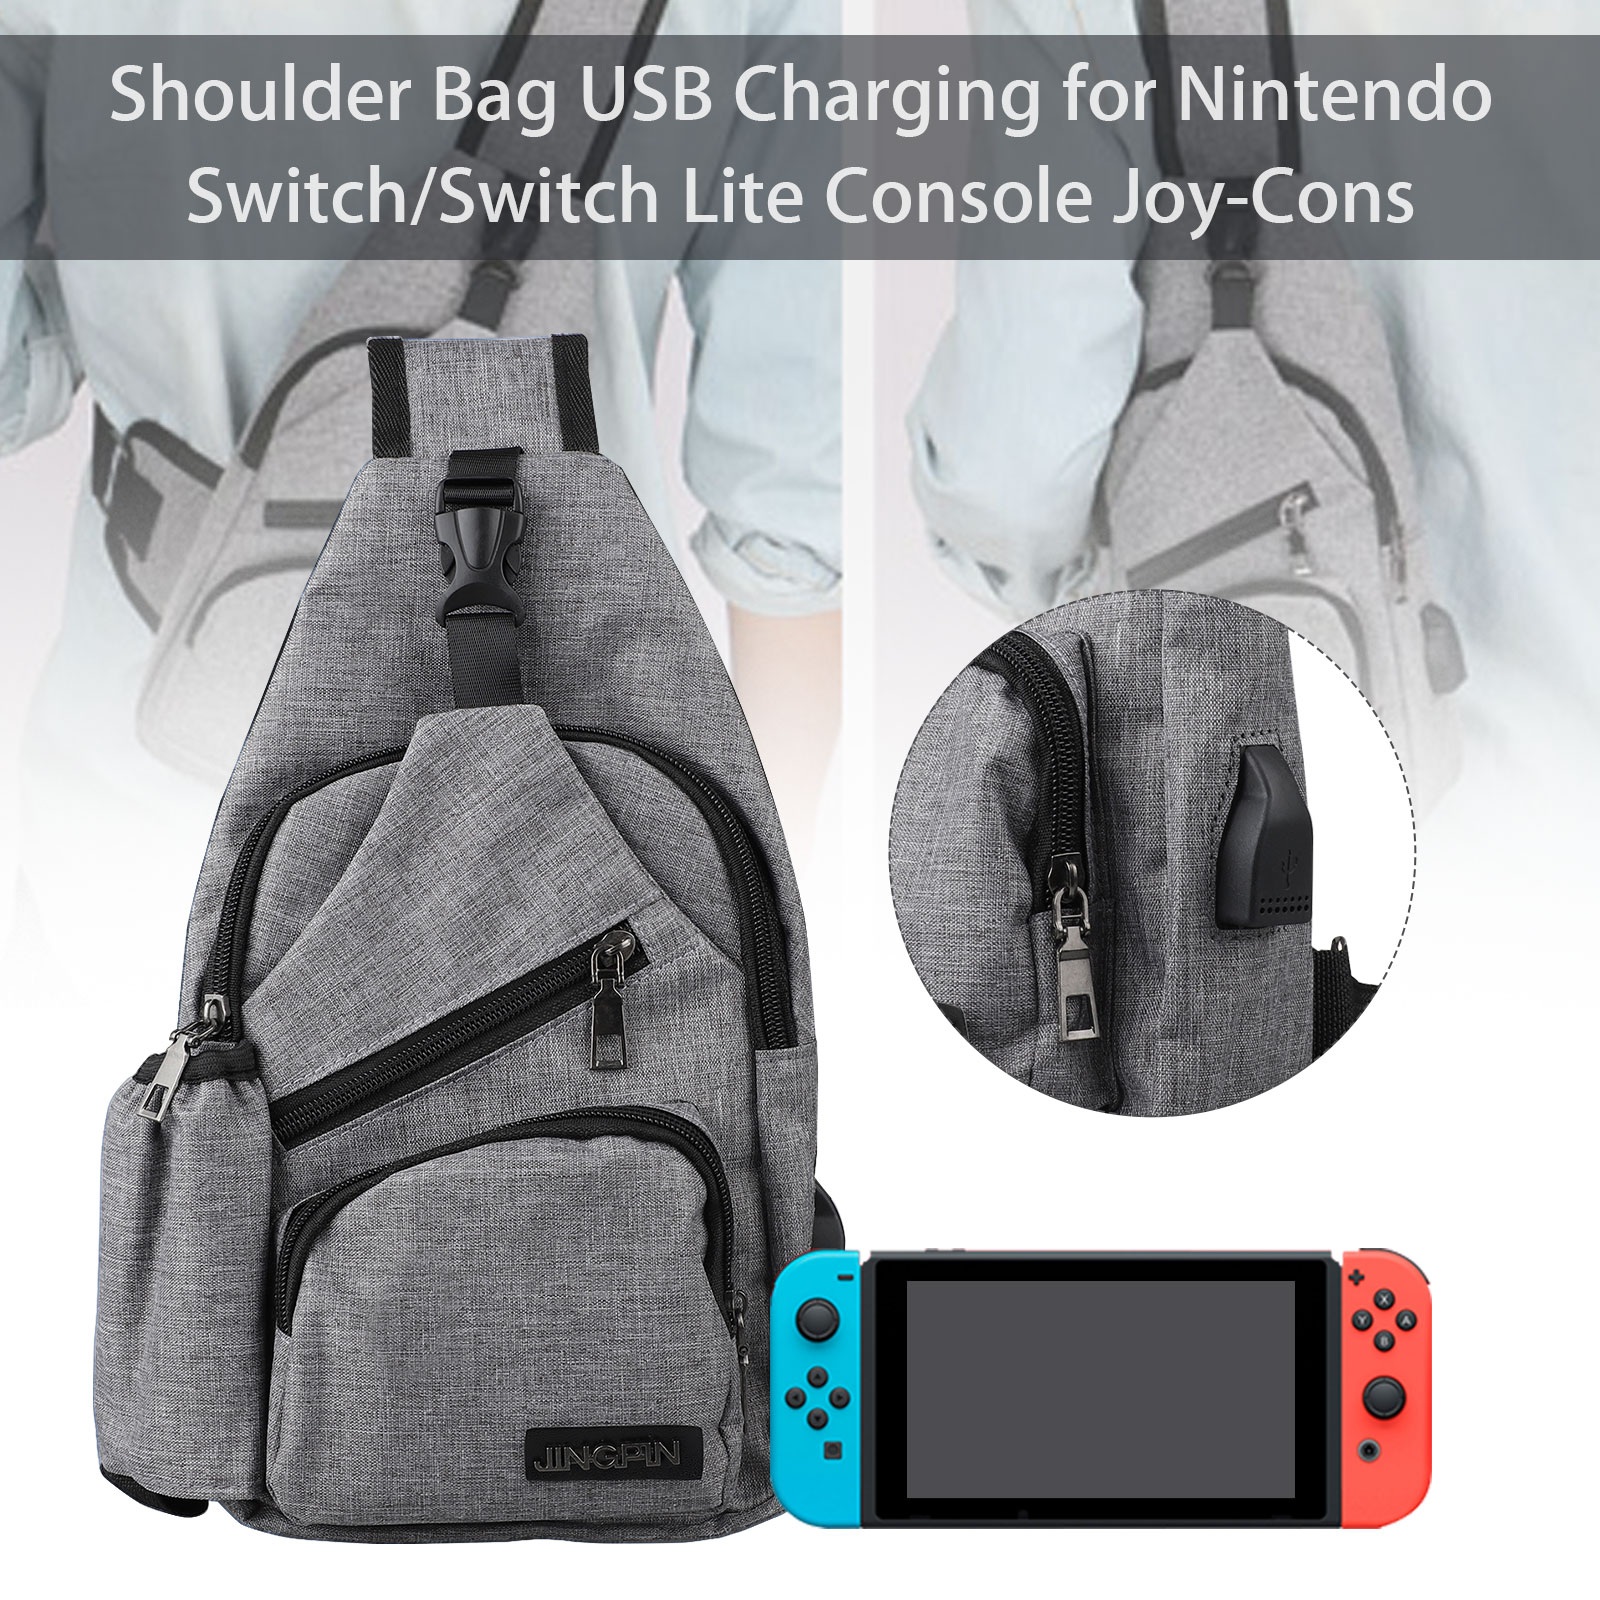 Backpack-Crossbody-Travel-Bag-For-Nintendo-Switch-Console-Joy-Cons-Accessories thumbnail 2